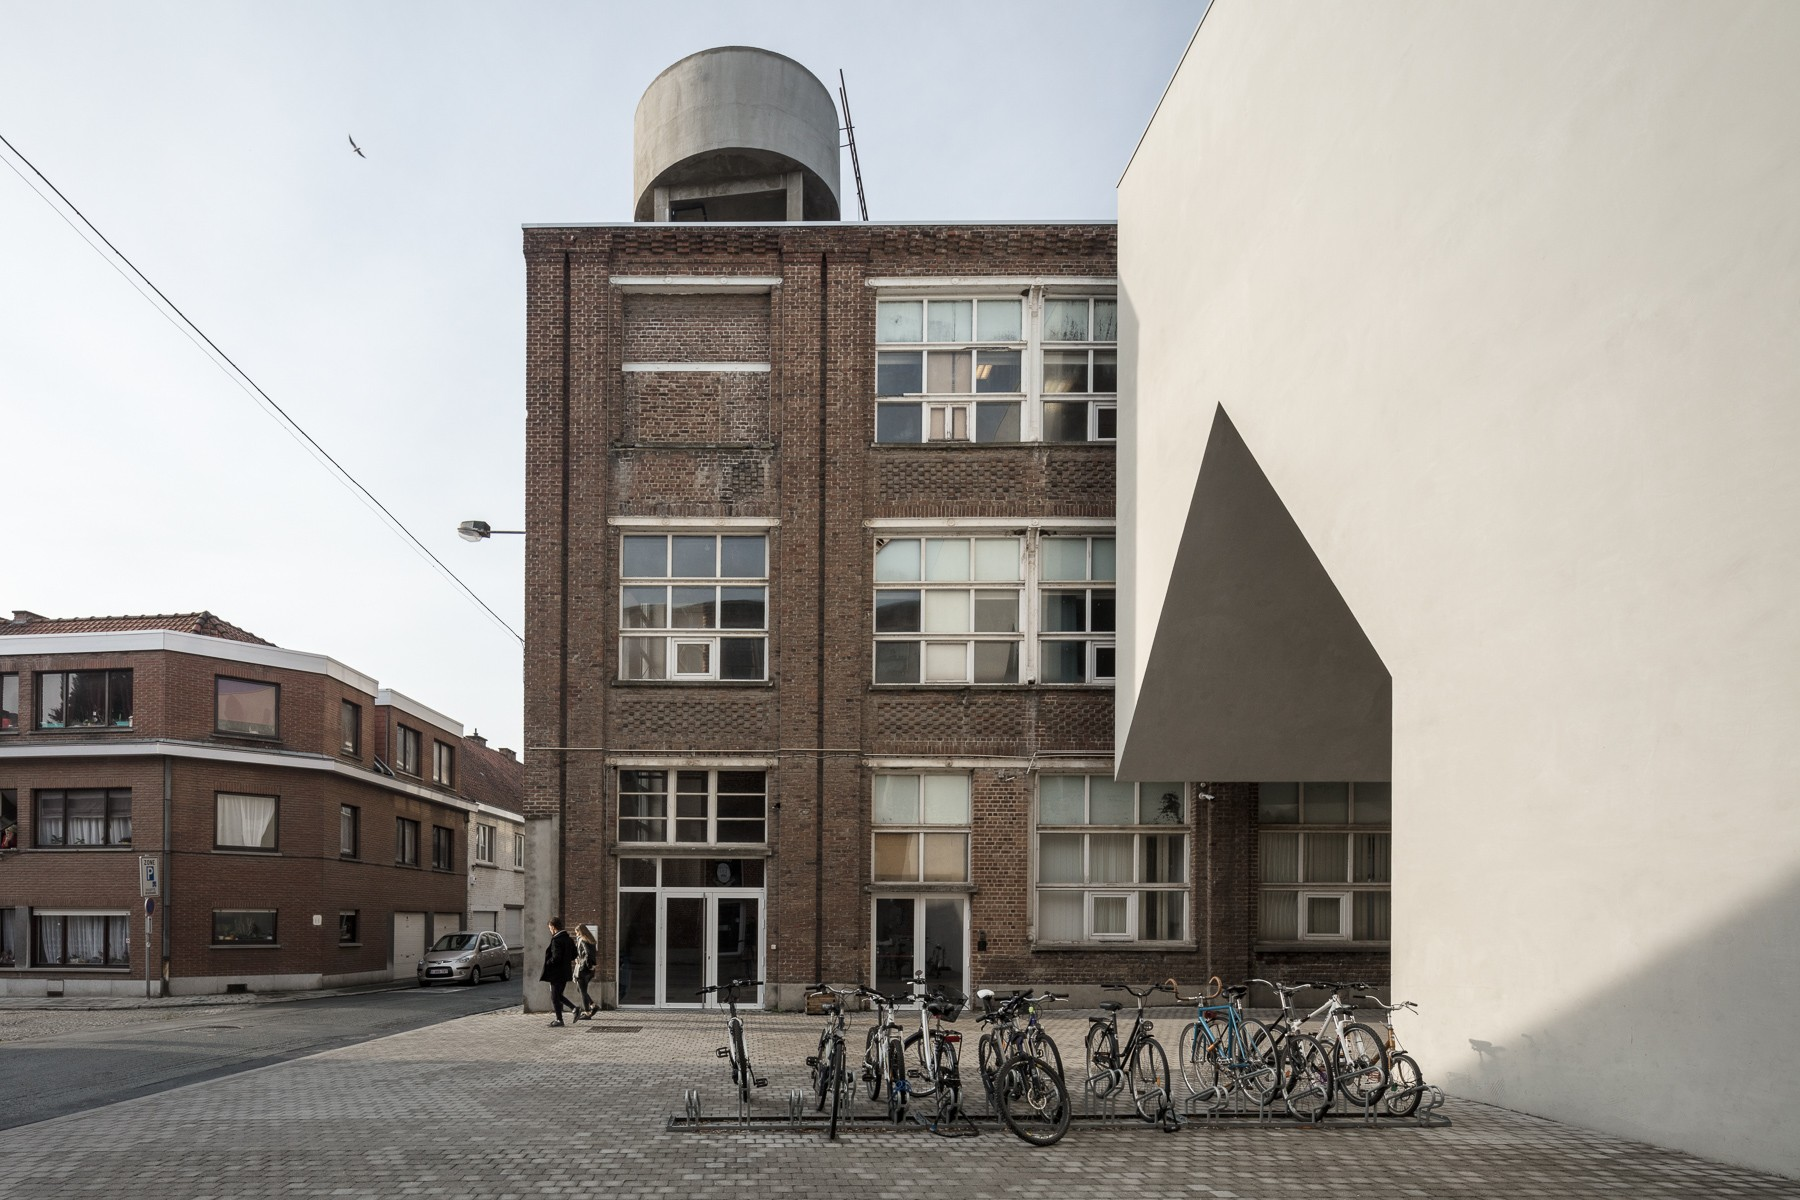 Architecture Faculty in Tournai _ Aires Mateus